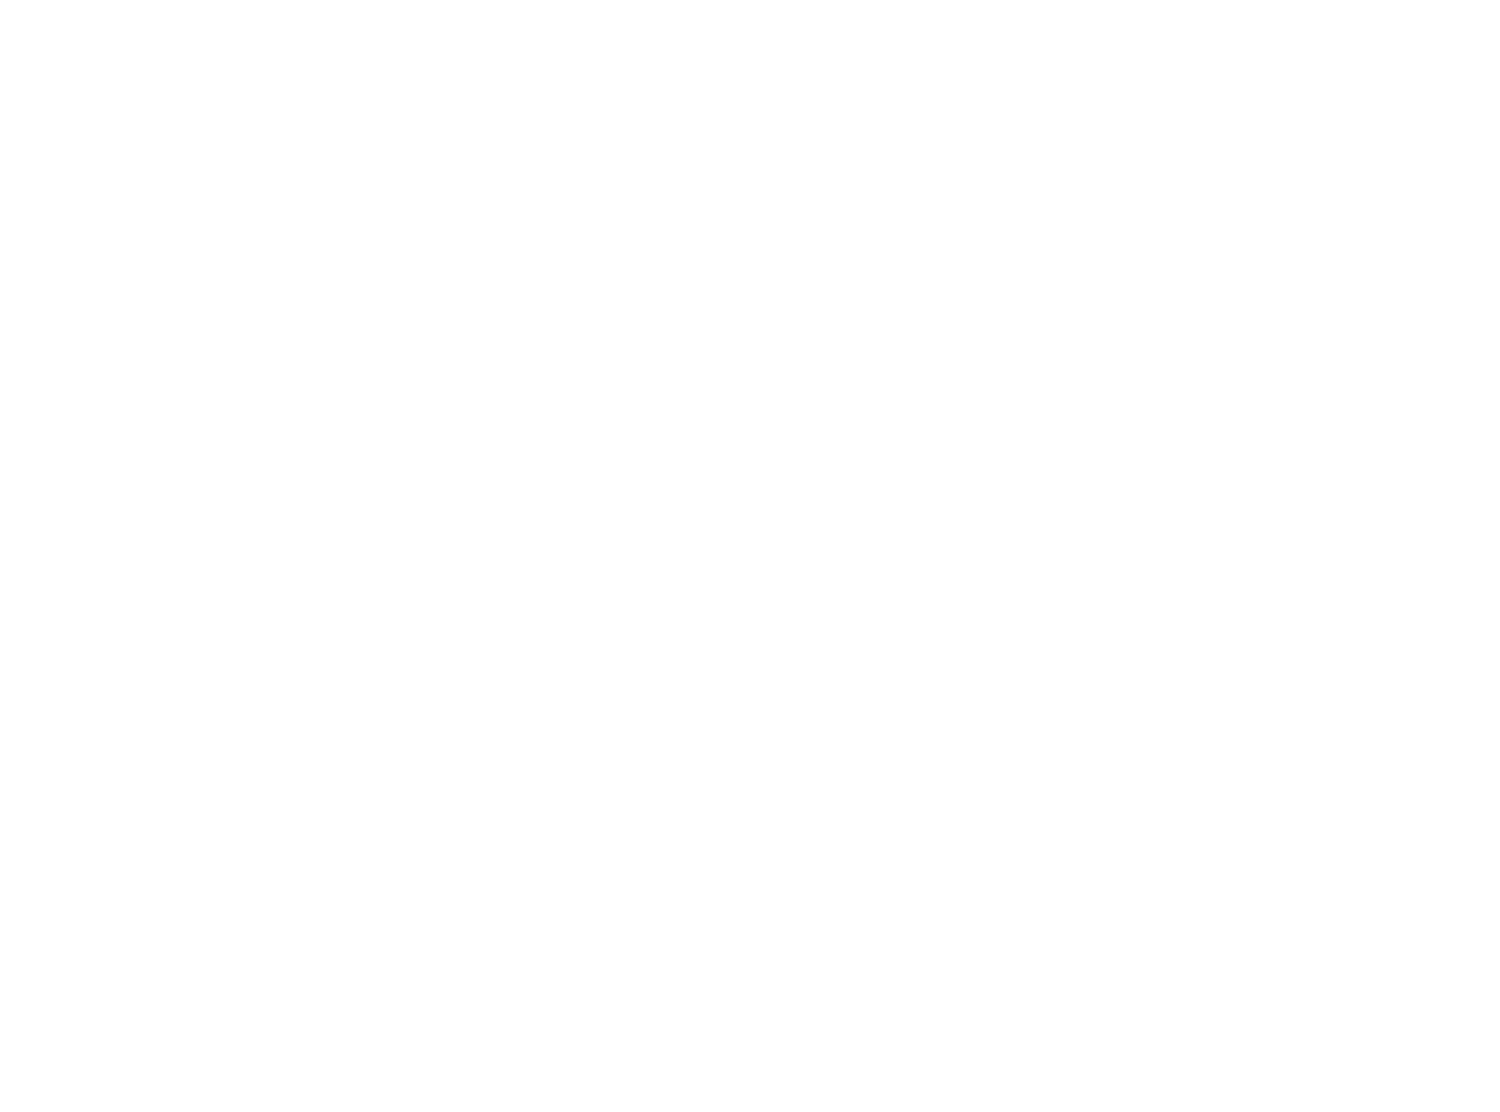 Weddings by Sunnyside